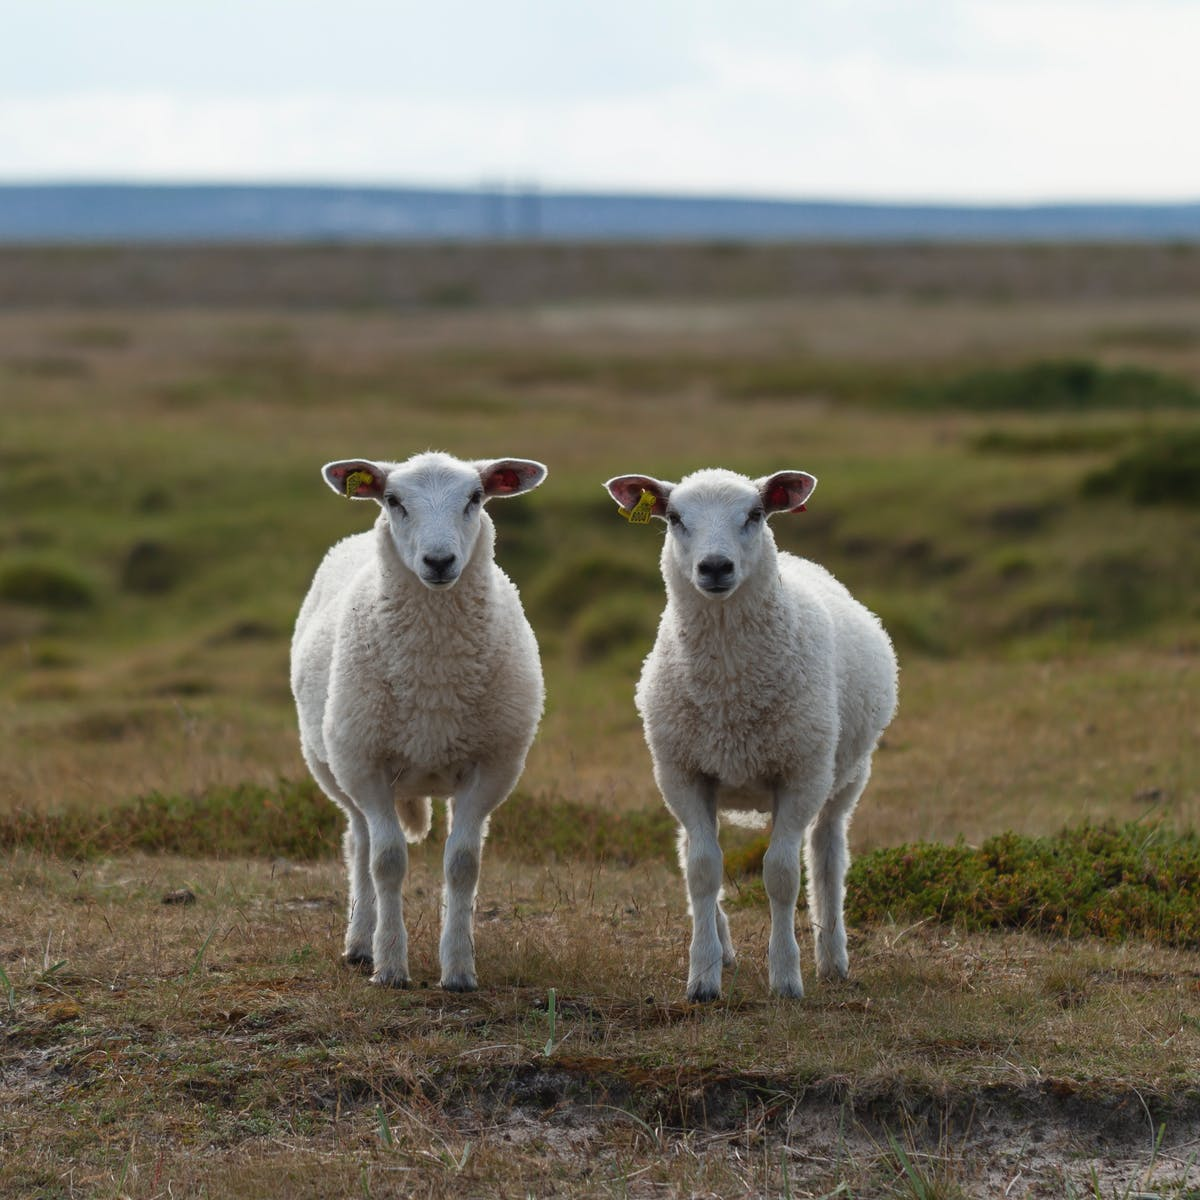 Australia's drought could be increasing Q fever risk, but